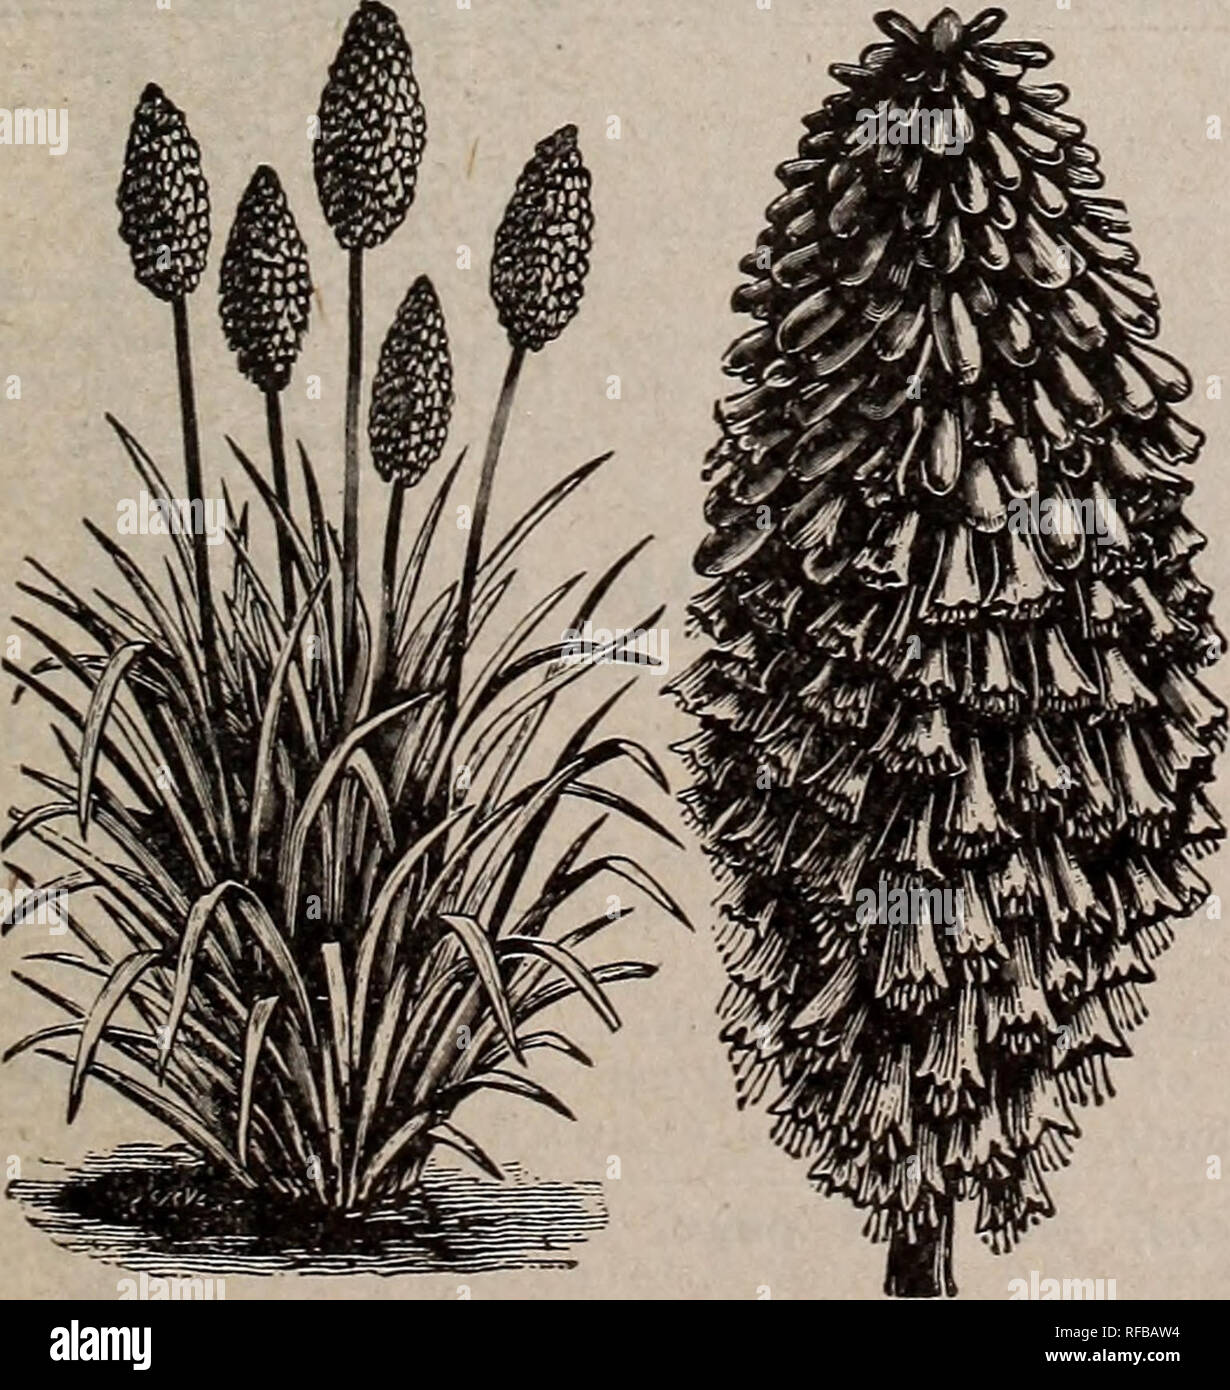 . Catalogue 1913 : seeds, bulbs, shrubs. Seeds Catalogs; Vegetables Seeds Catalogs; Flowers Seeds Catalogs; Fruit Seeds Catalogs; Nurseries (Horticulture) Catalogs. HARDY PHLOX SWEET WILLIAM (Dianthus Barbatus) These old-fashioned favorites have always been one of our most prized border .plants. They look well in large clumps. There is a great variety of rich colors, and the flowers are very fragrant. Our plants are grown from a very select strain of seed. Each, 15c; doz., $1.50. TRITOMA (Flame Flower or Torch Lily) Splendid summer and fall-flow- ering plants, with stately flower scapes and ma - Stock Image